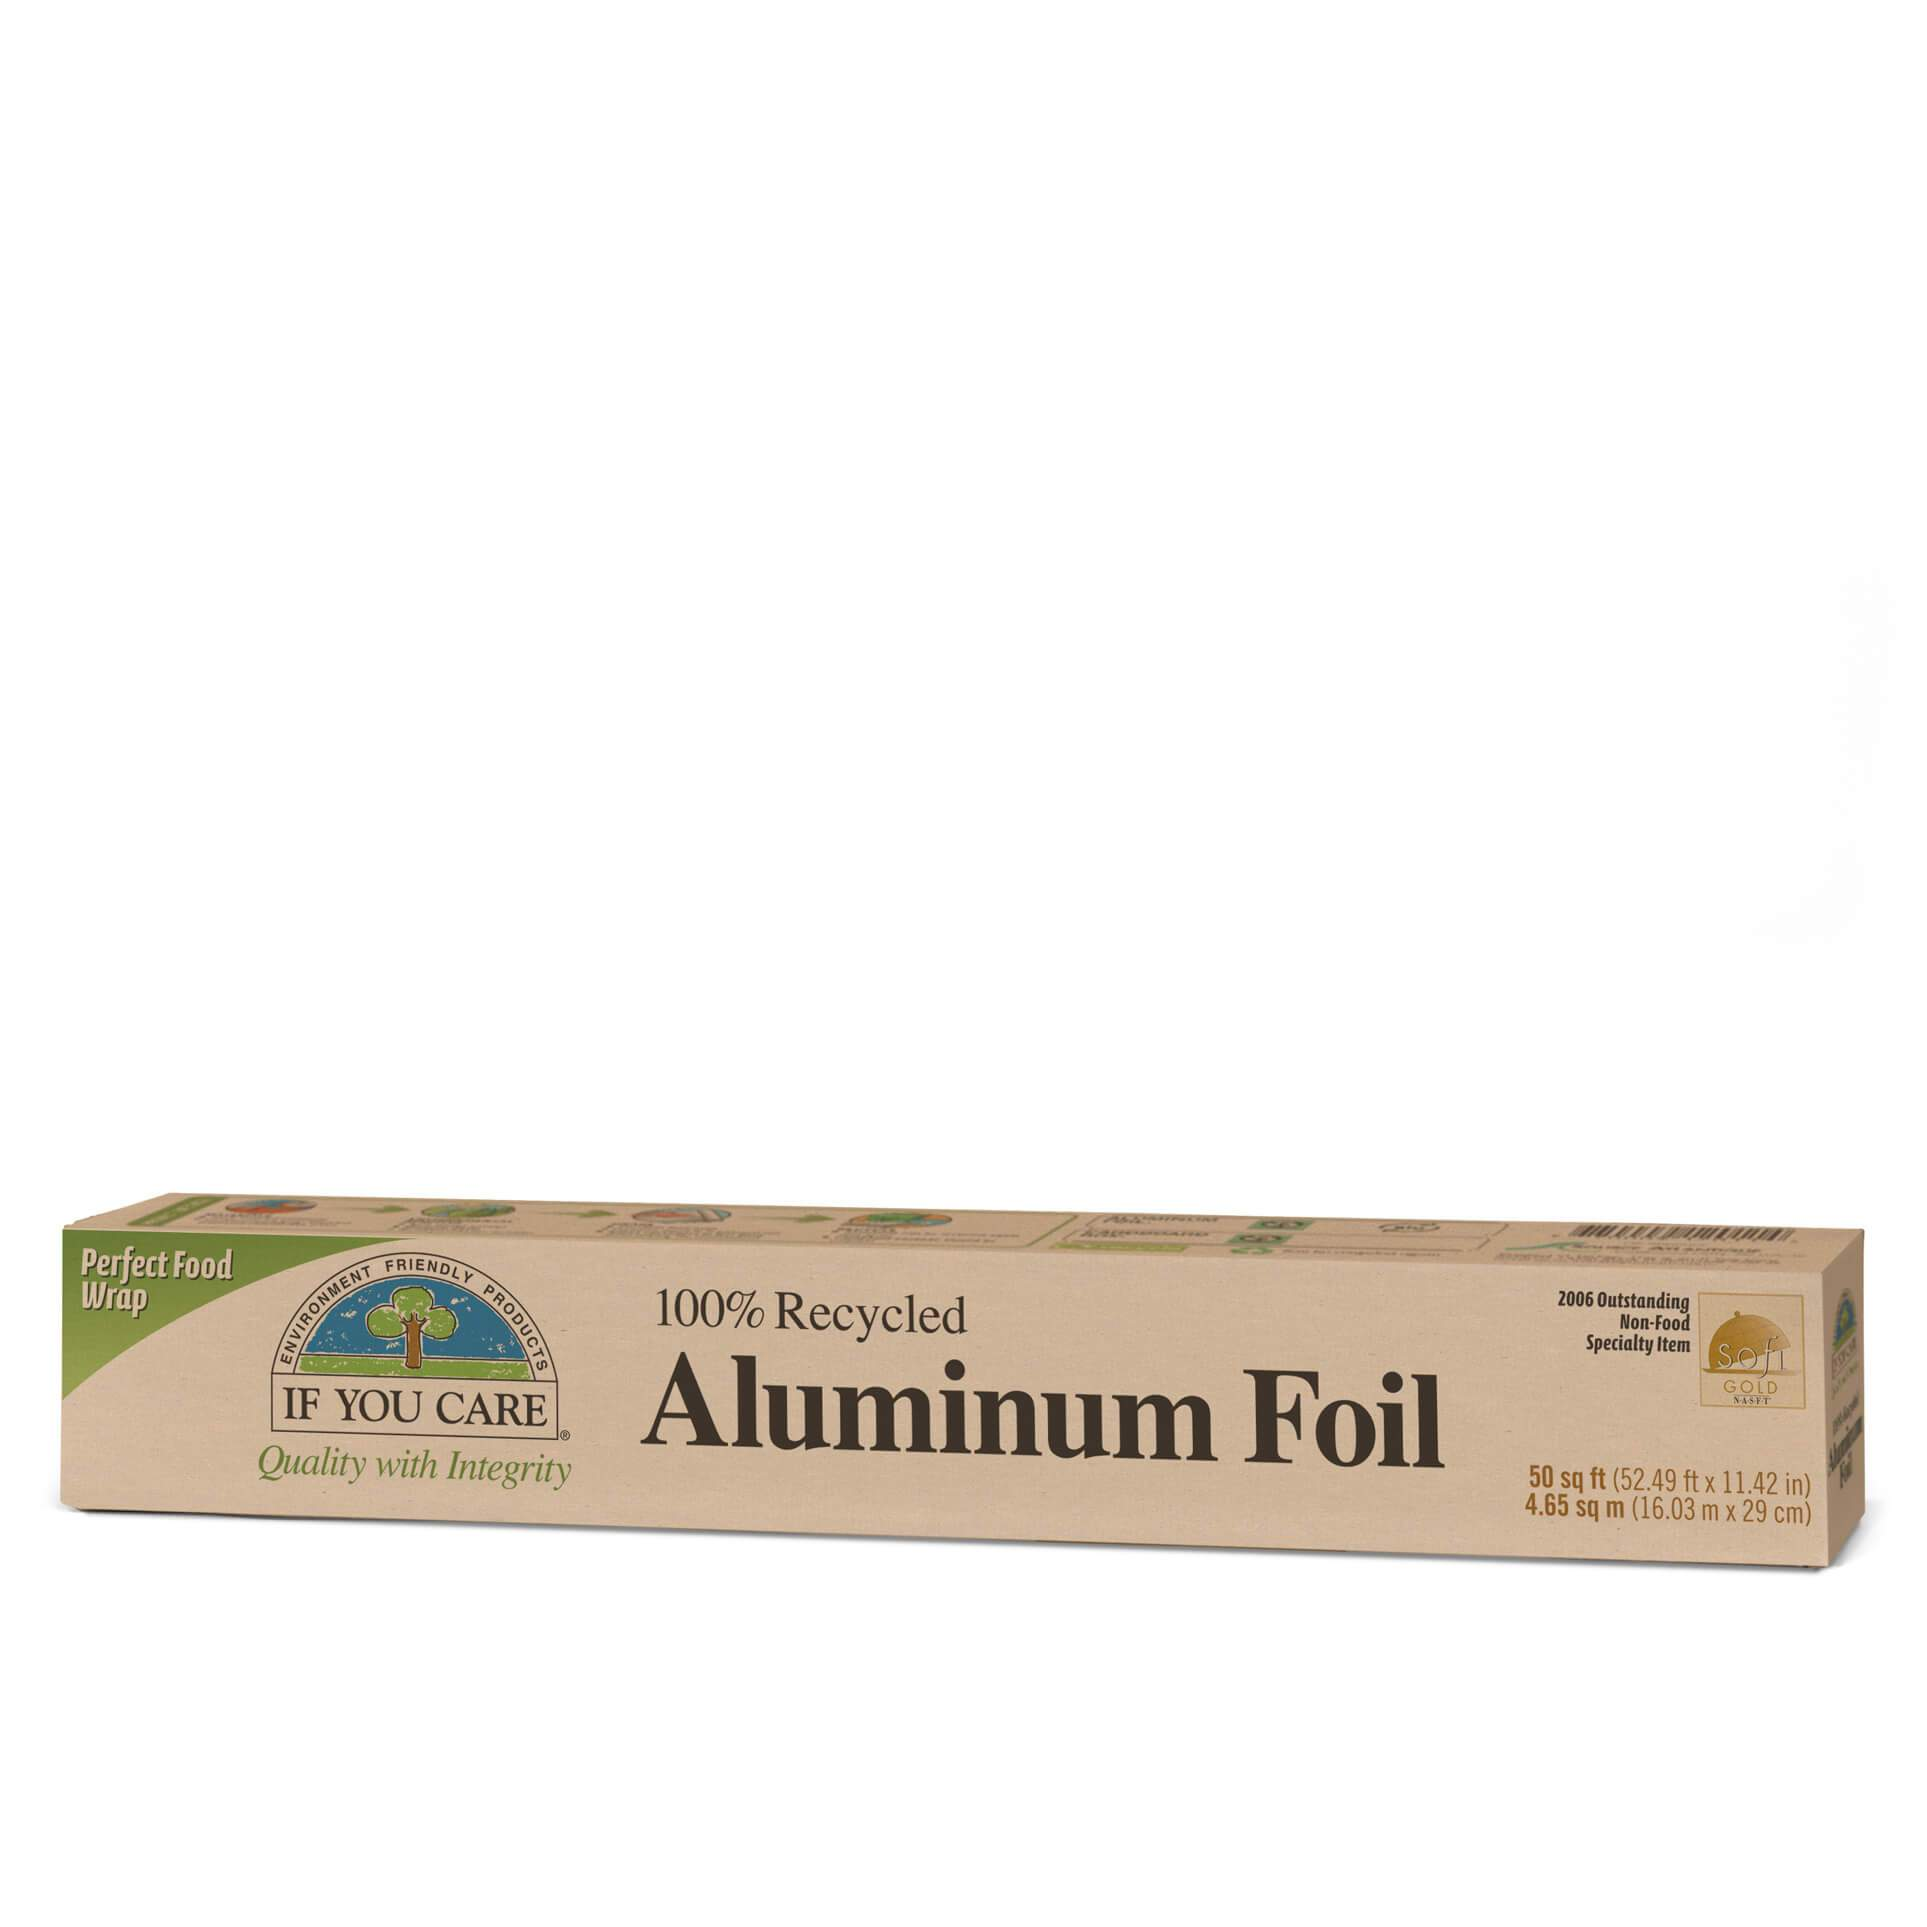 Healthy Lifestyles - If You Care - Enviro Friendly - 100% Recycled Aluminum Foil, 50 Sq. Ft.